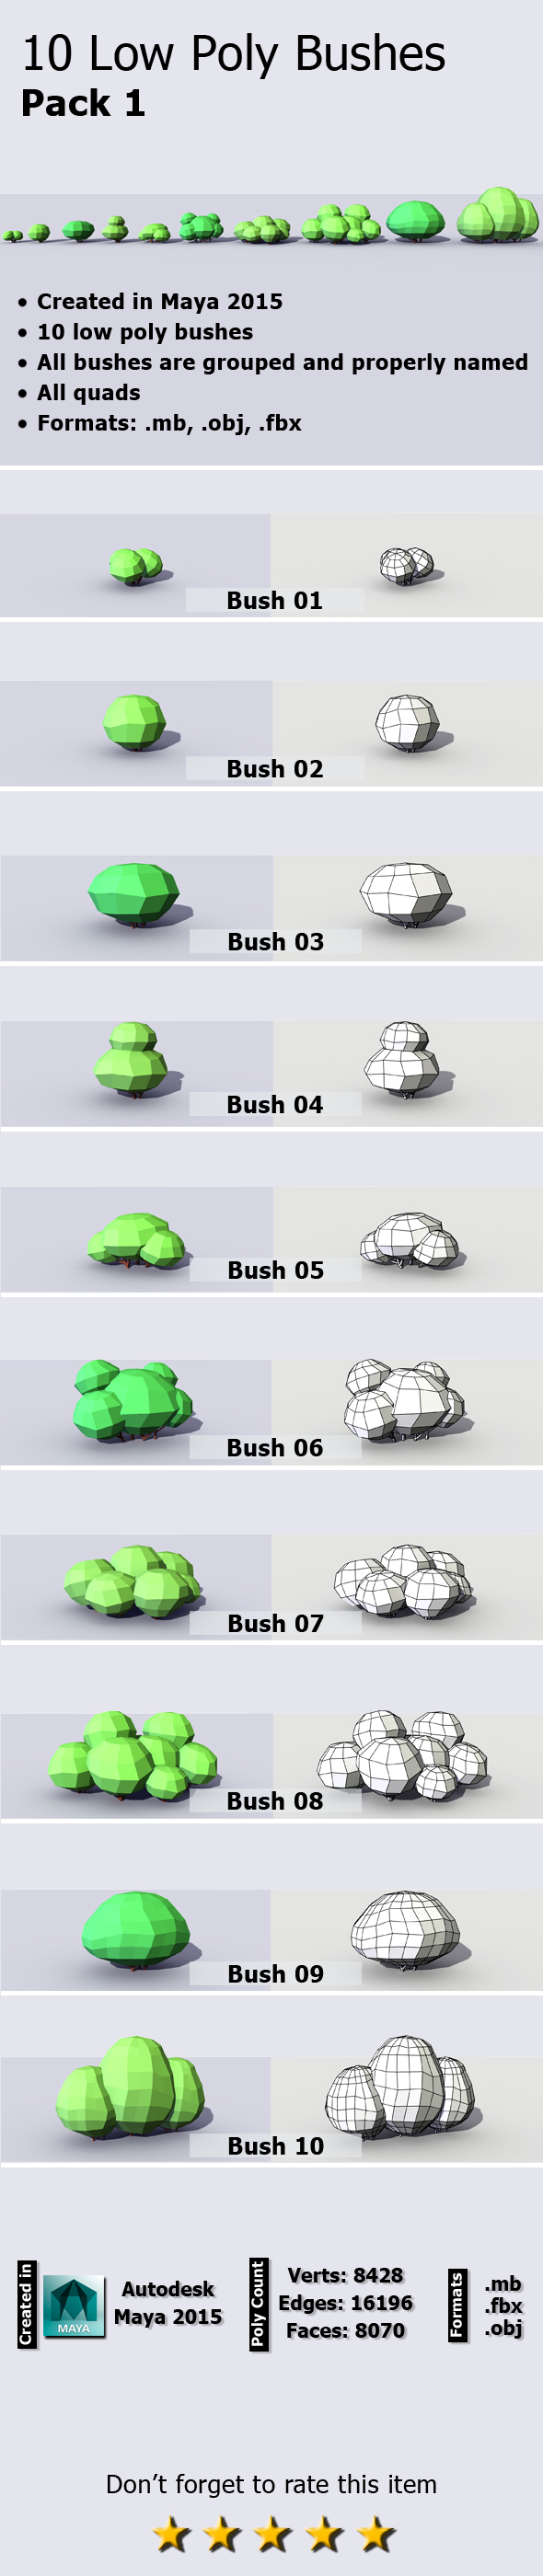 10 Low Poly Bushes Pack - 3DOcean Item for Sale